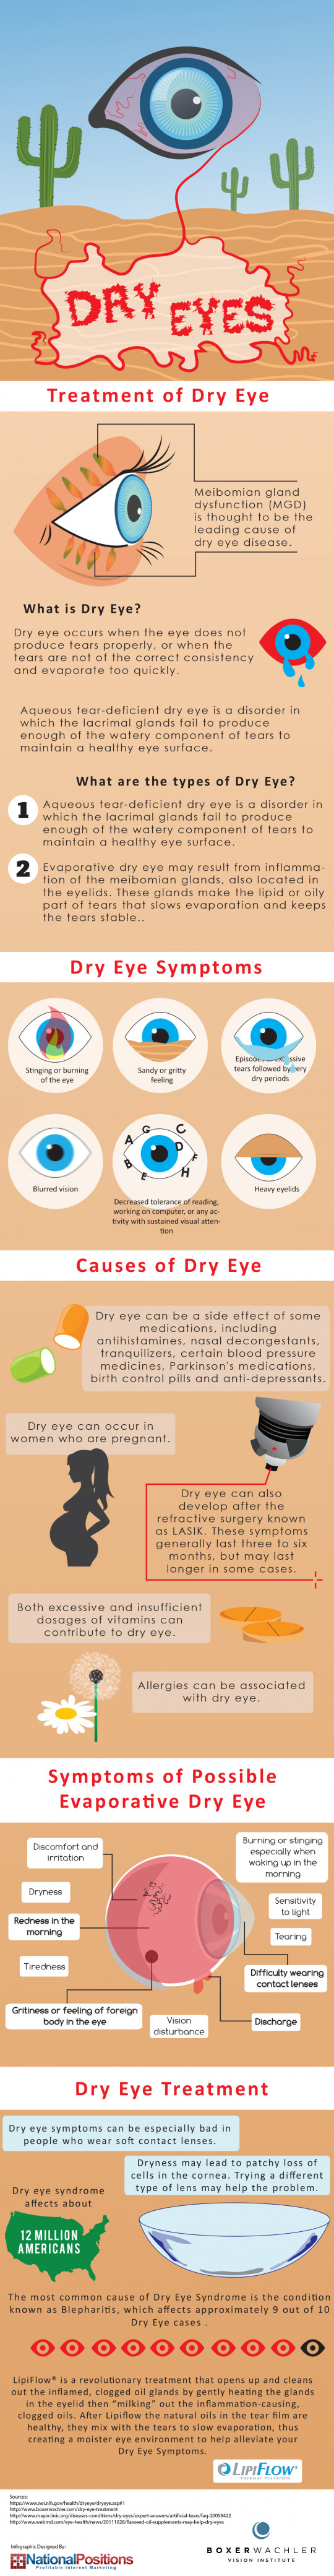 Treatment of Dry Eyes